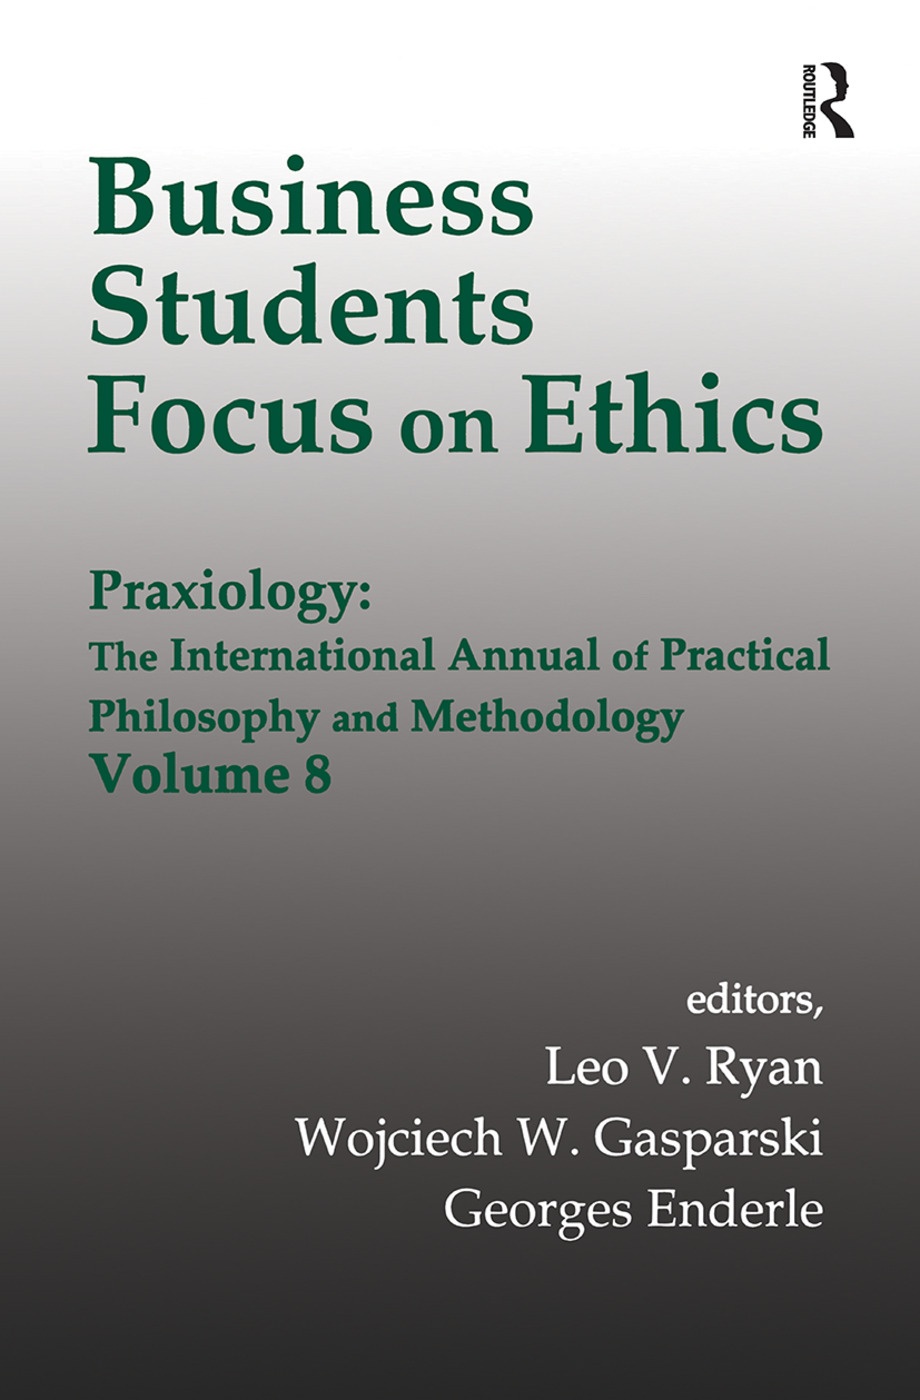 Business Students Focus on Ethics